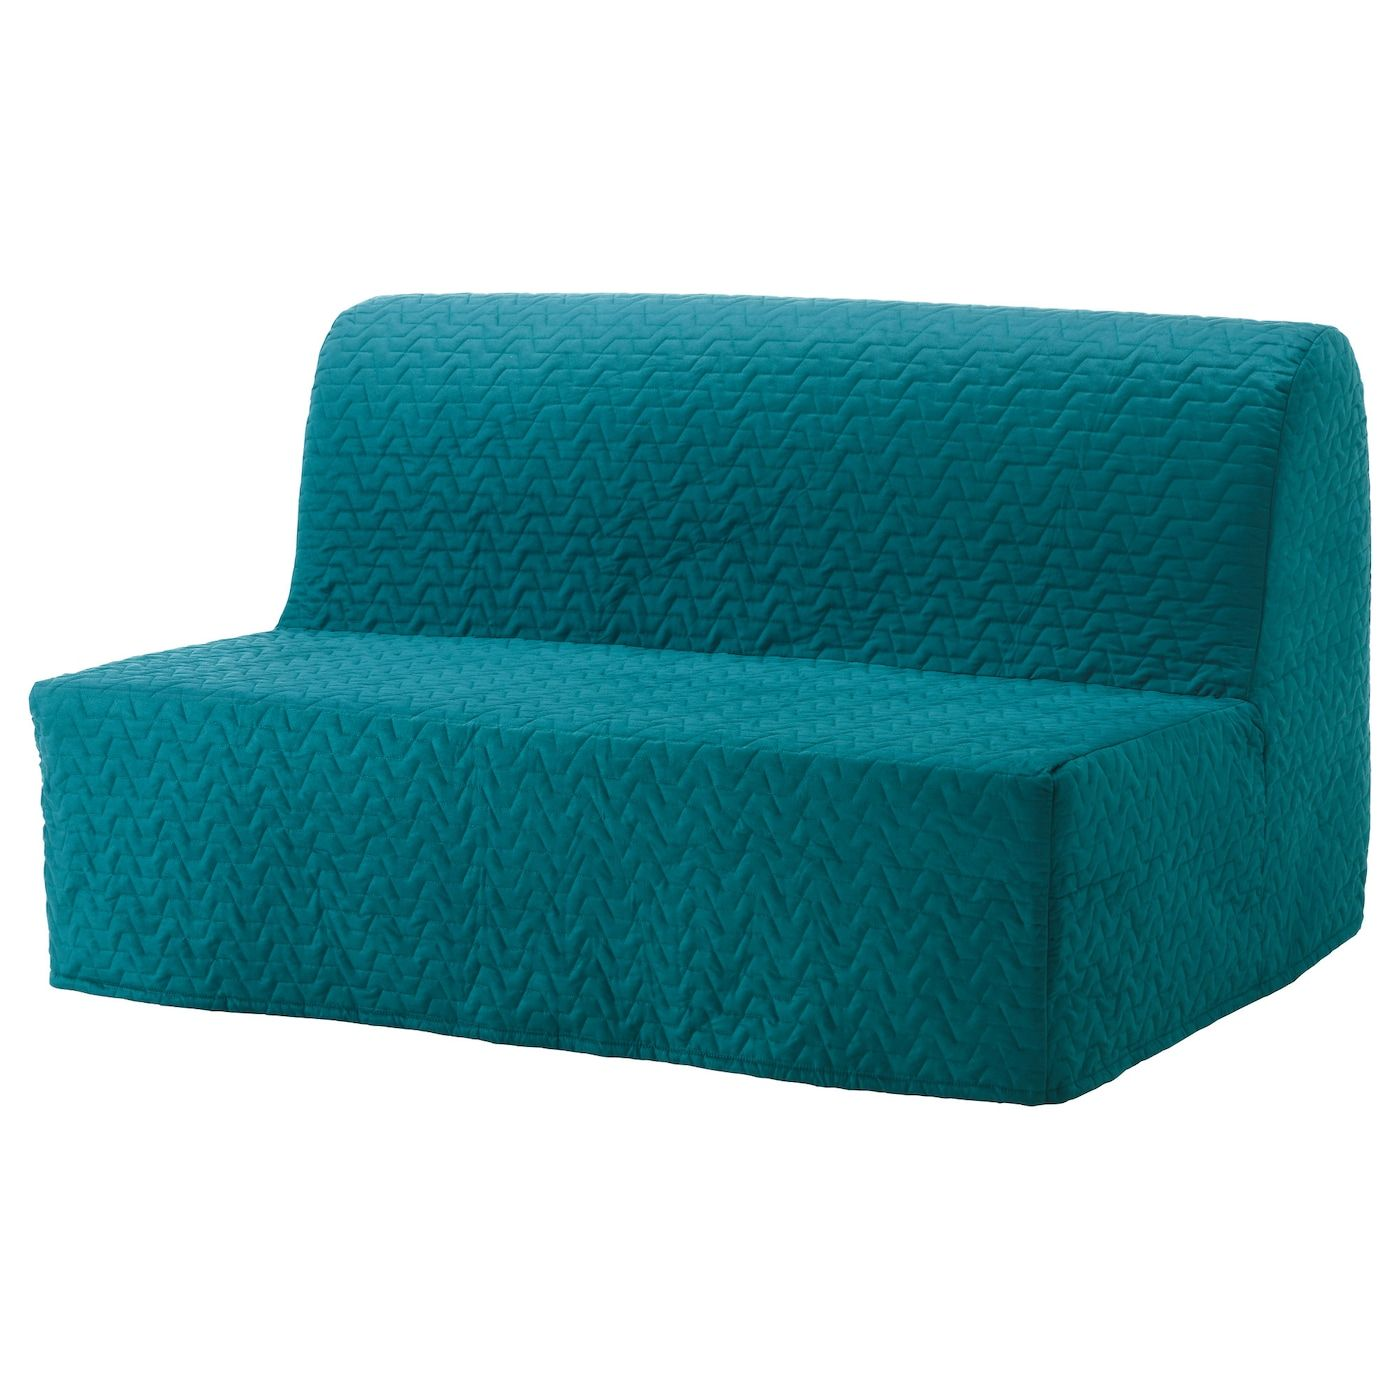 Lycksele Lovas Sovesofa 2 Vallarum Turkis Ikea In 2020 Lycksele Sleeper Sofa Ikea Sofa Bed